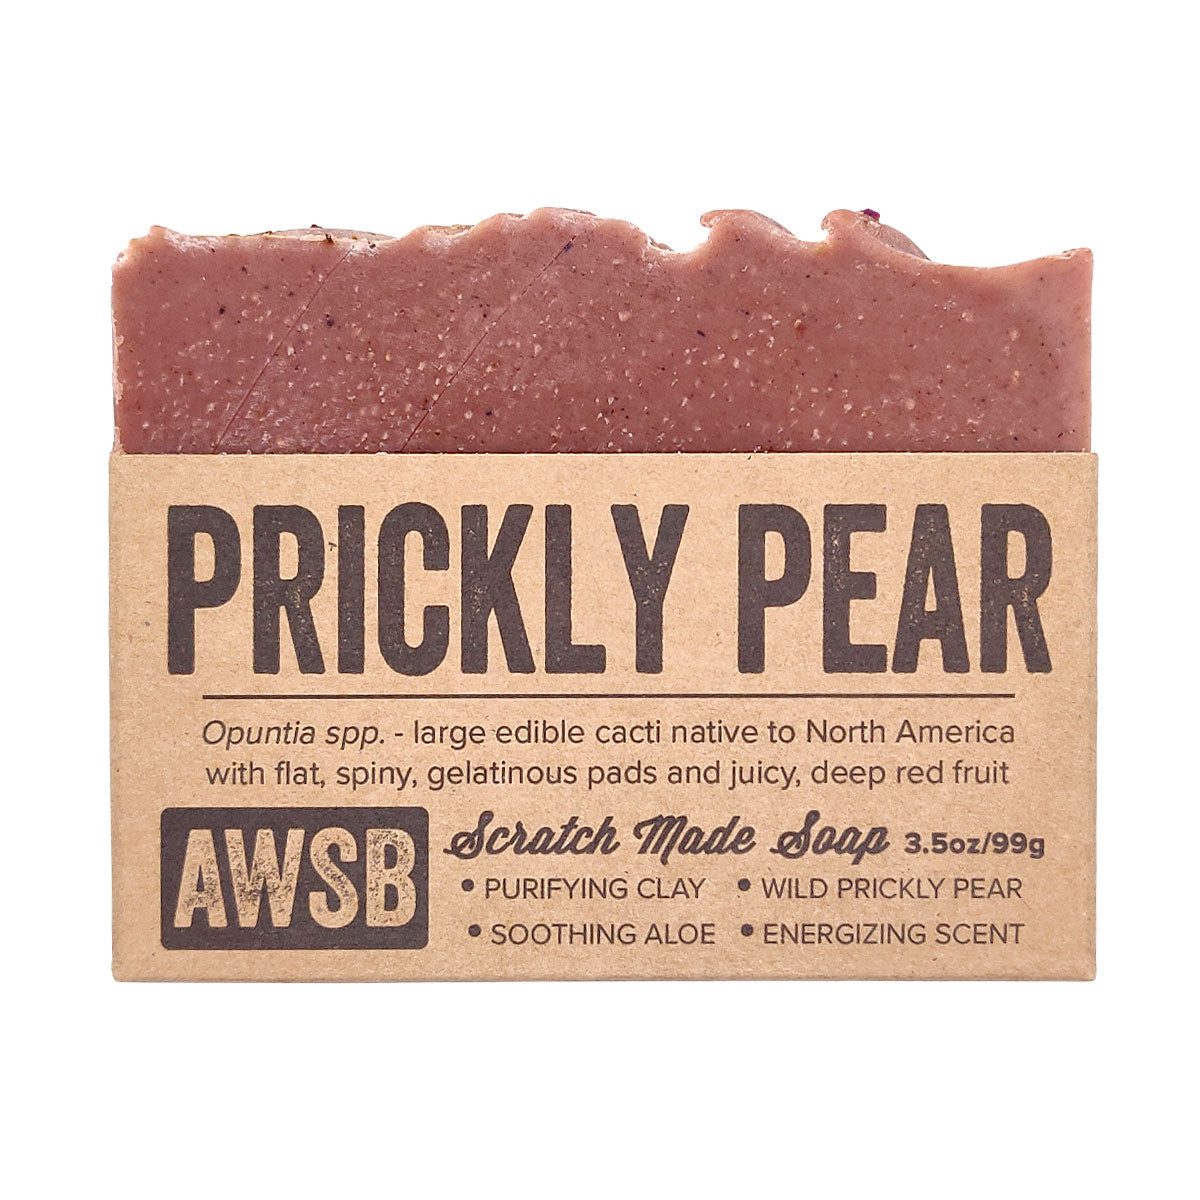 Prickly Pear Soap for sale, Soap Bar, Handmade Soaps, Clean Scent, Sustainable Skincare, Vegan Cruelty Free, Face And Body, Bath Beauty, Natural Gift